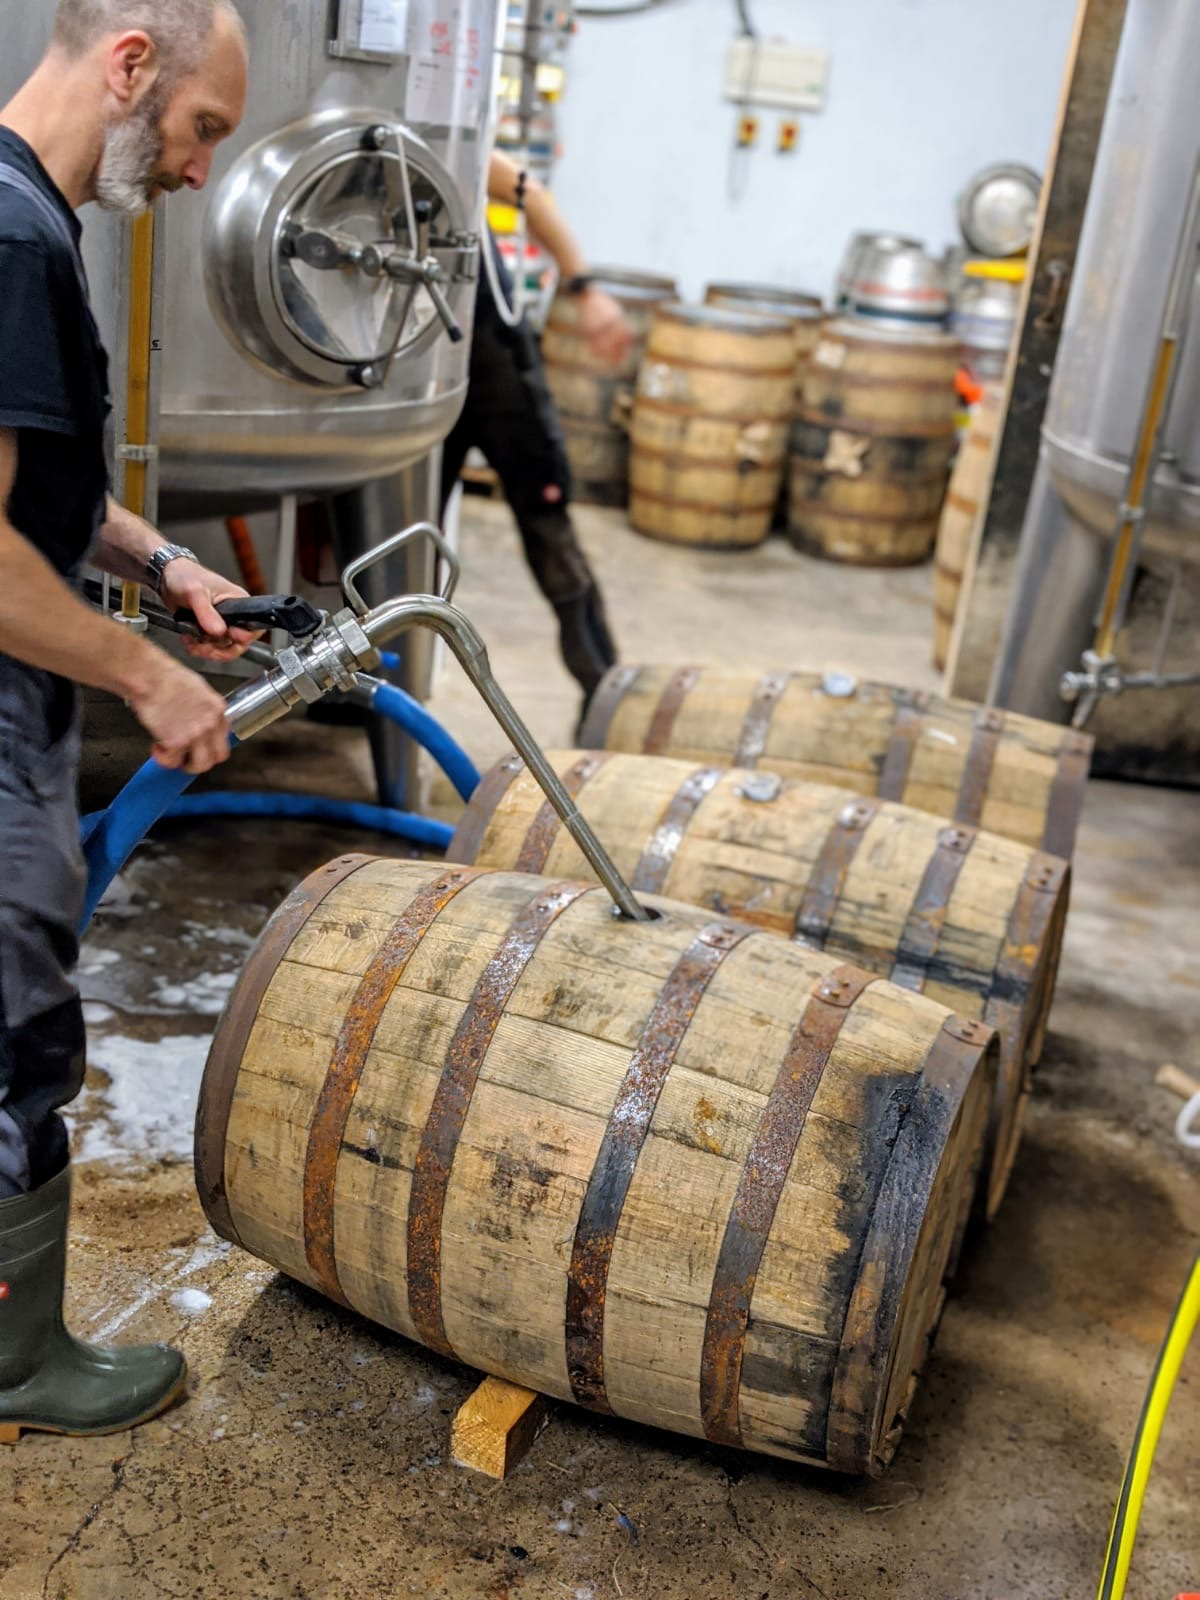 Brewer Andrew fills ex-whisky casks with beer at the Wold Top Brewery for our next barrel-aged collaboration